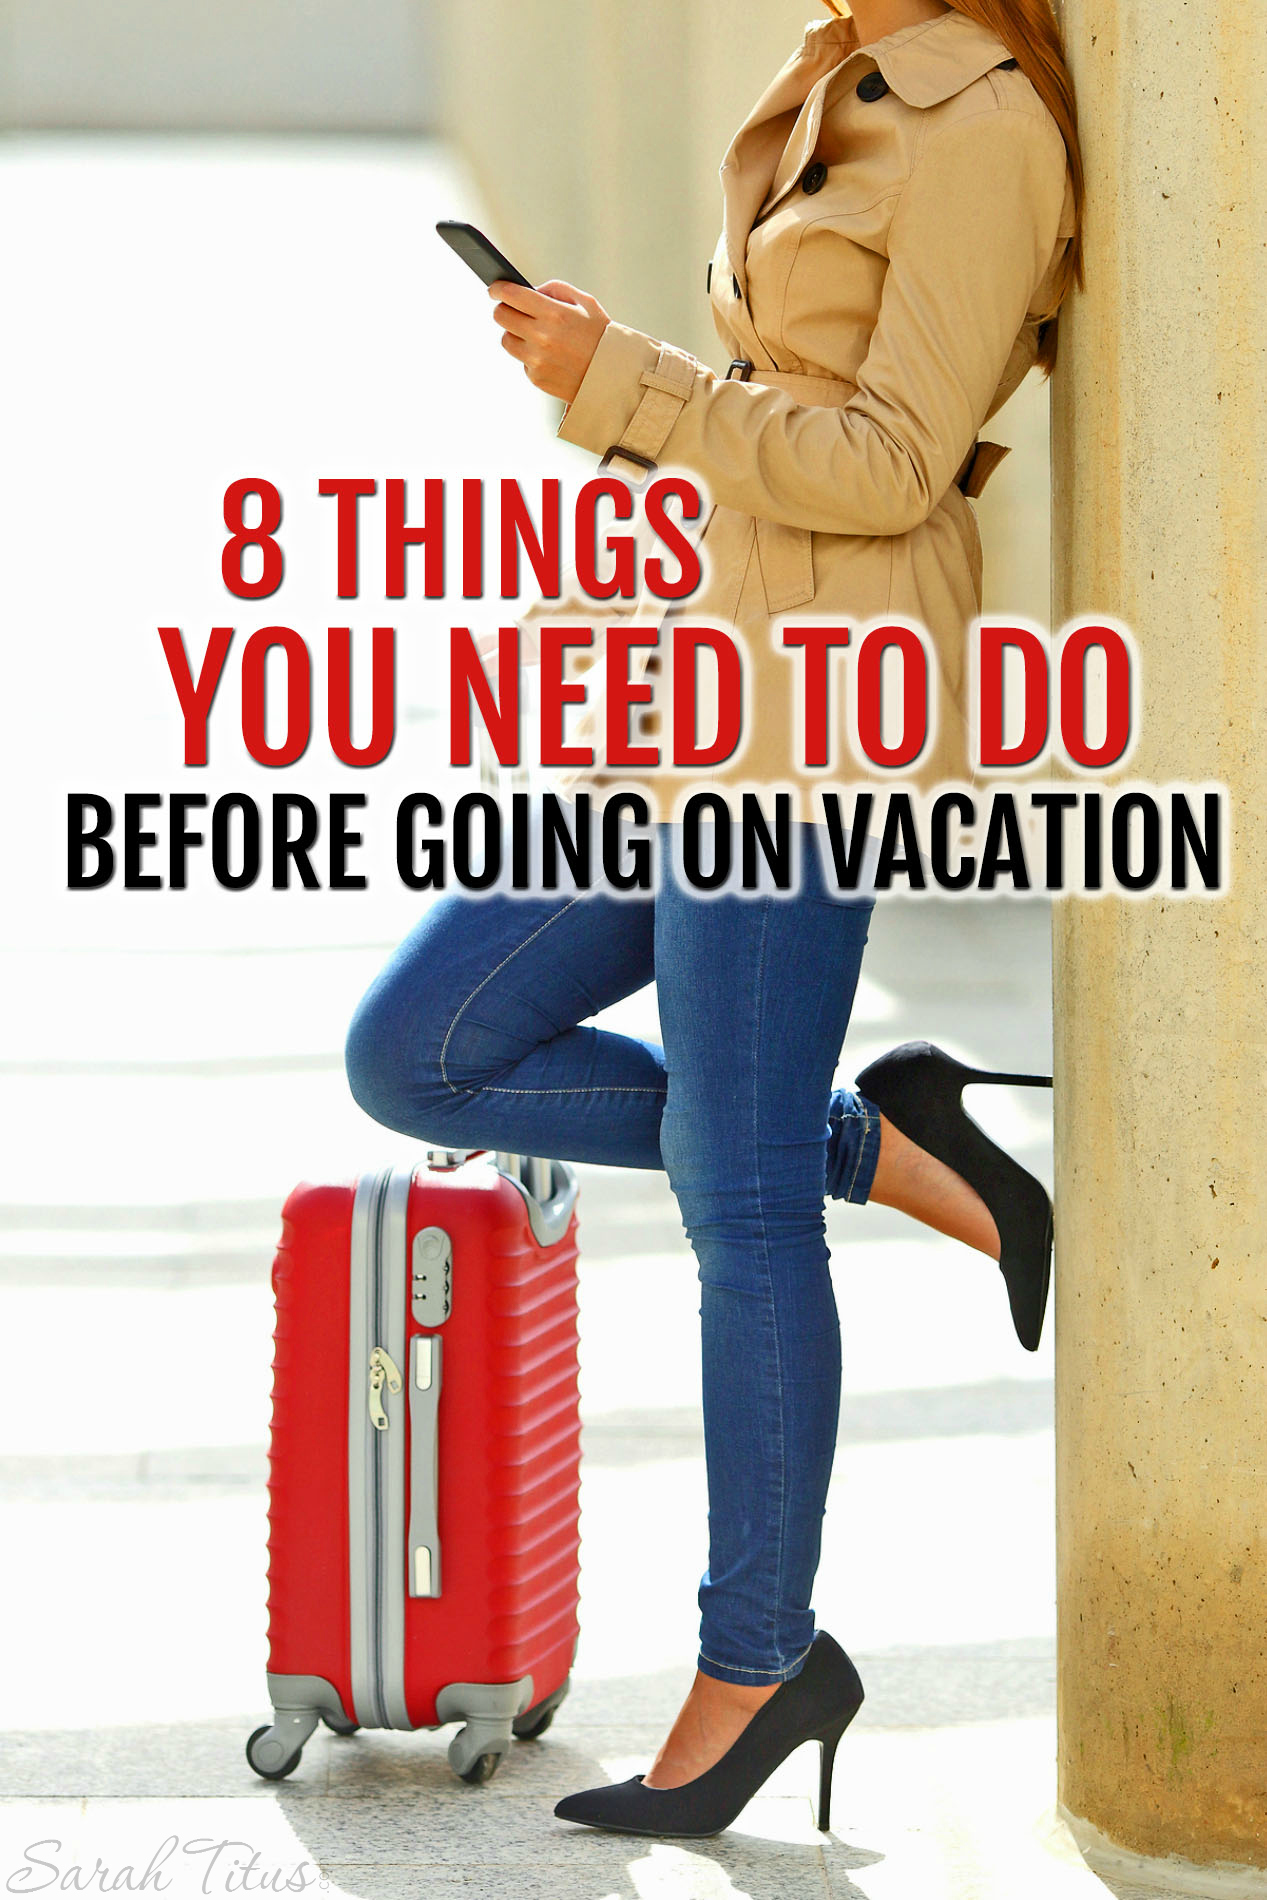 Summer is a favorite time to pack up and hit the road, but before you drive away, here are 8 things you need to do before going on vacation.